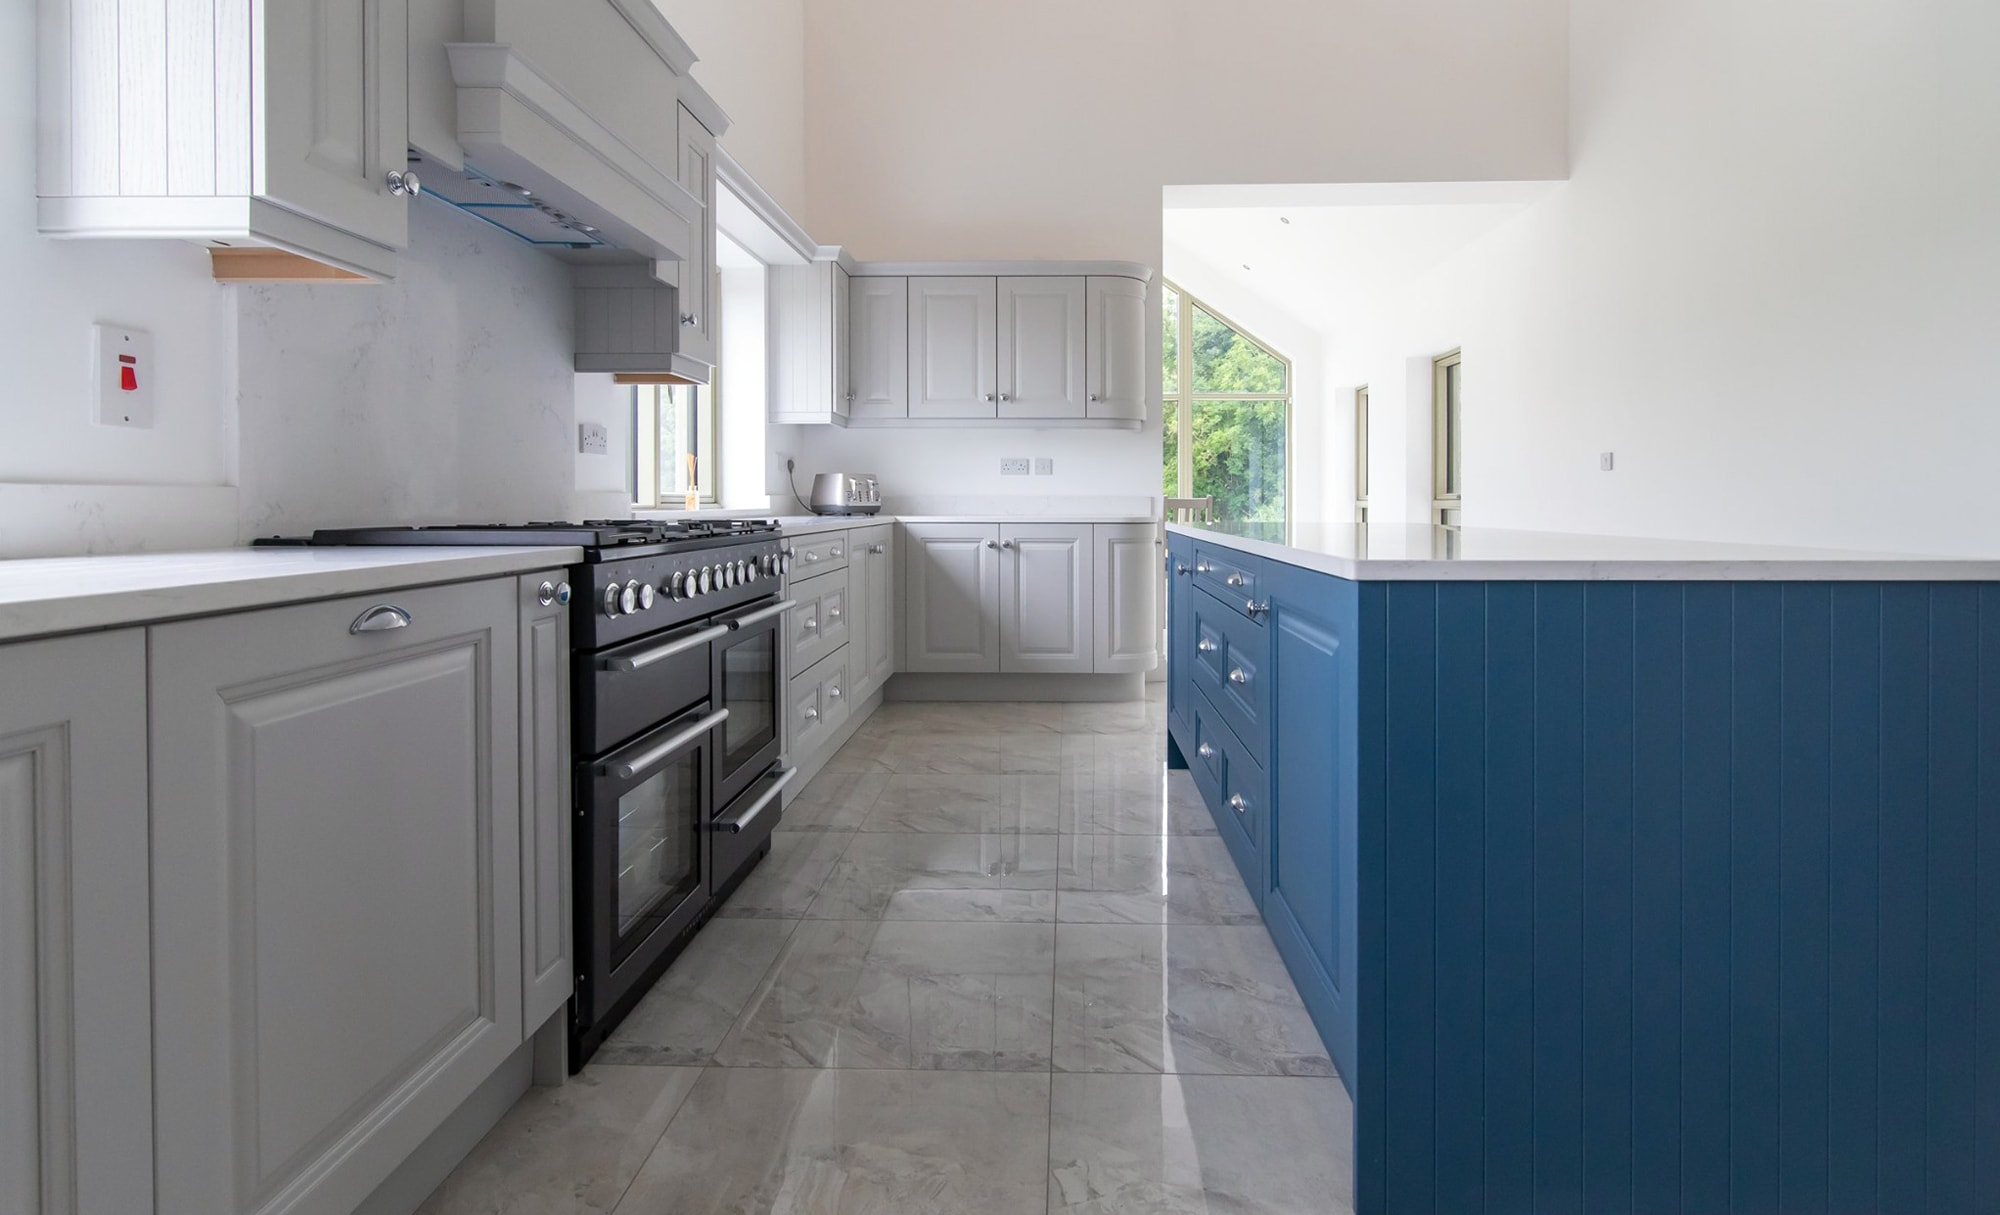 DWK Jefferson Light Grey & Airforce Blue Kitchen for a young couple in Co Offaly